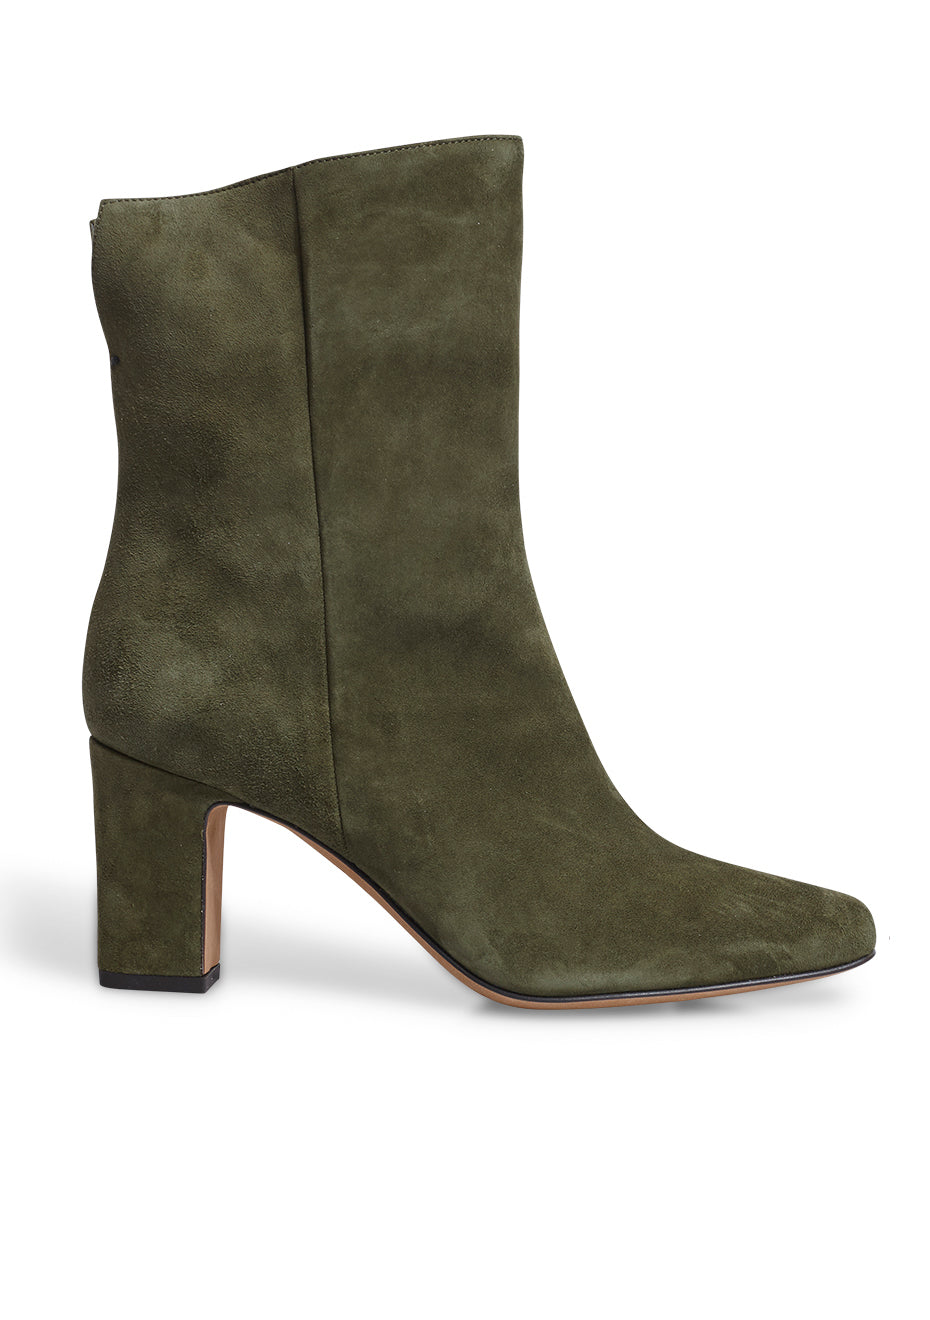 Lela Olive Suede Boots